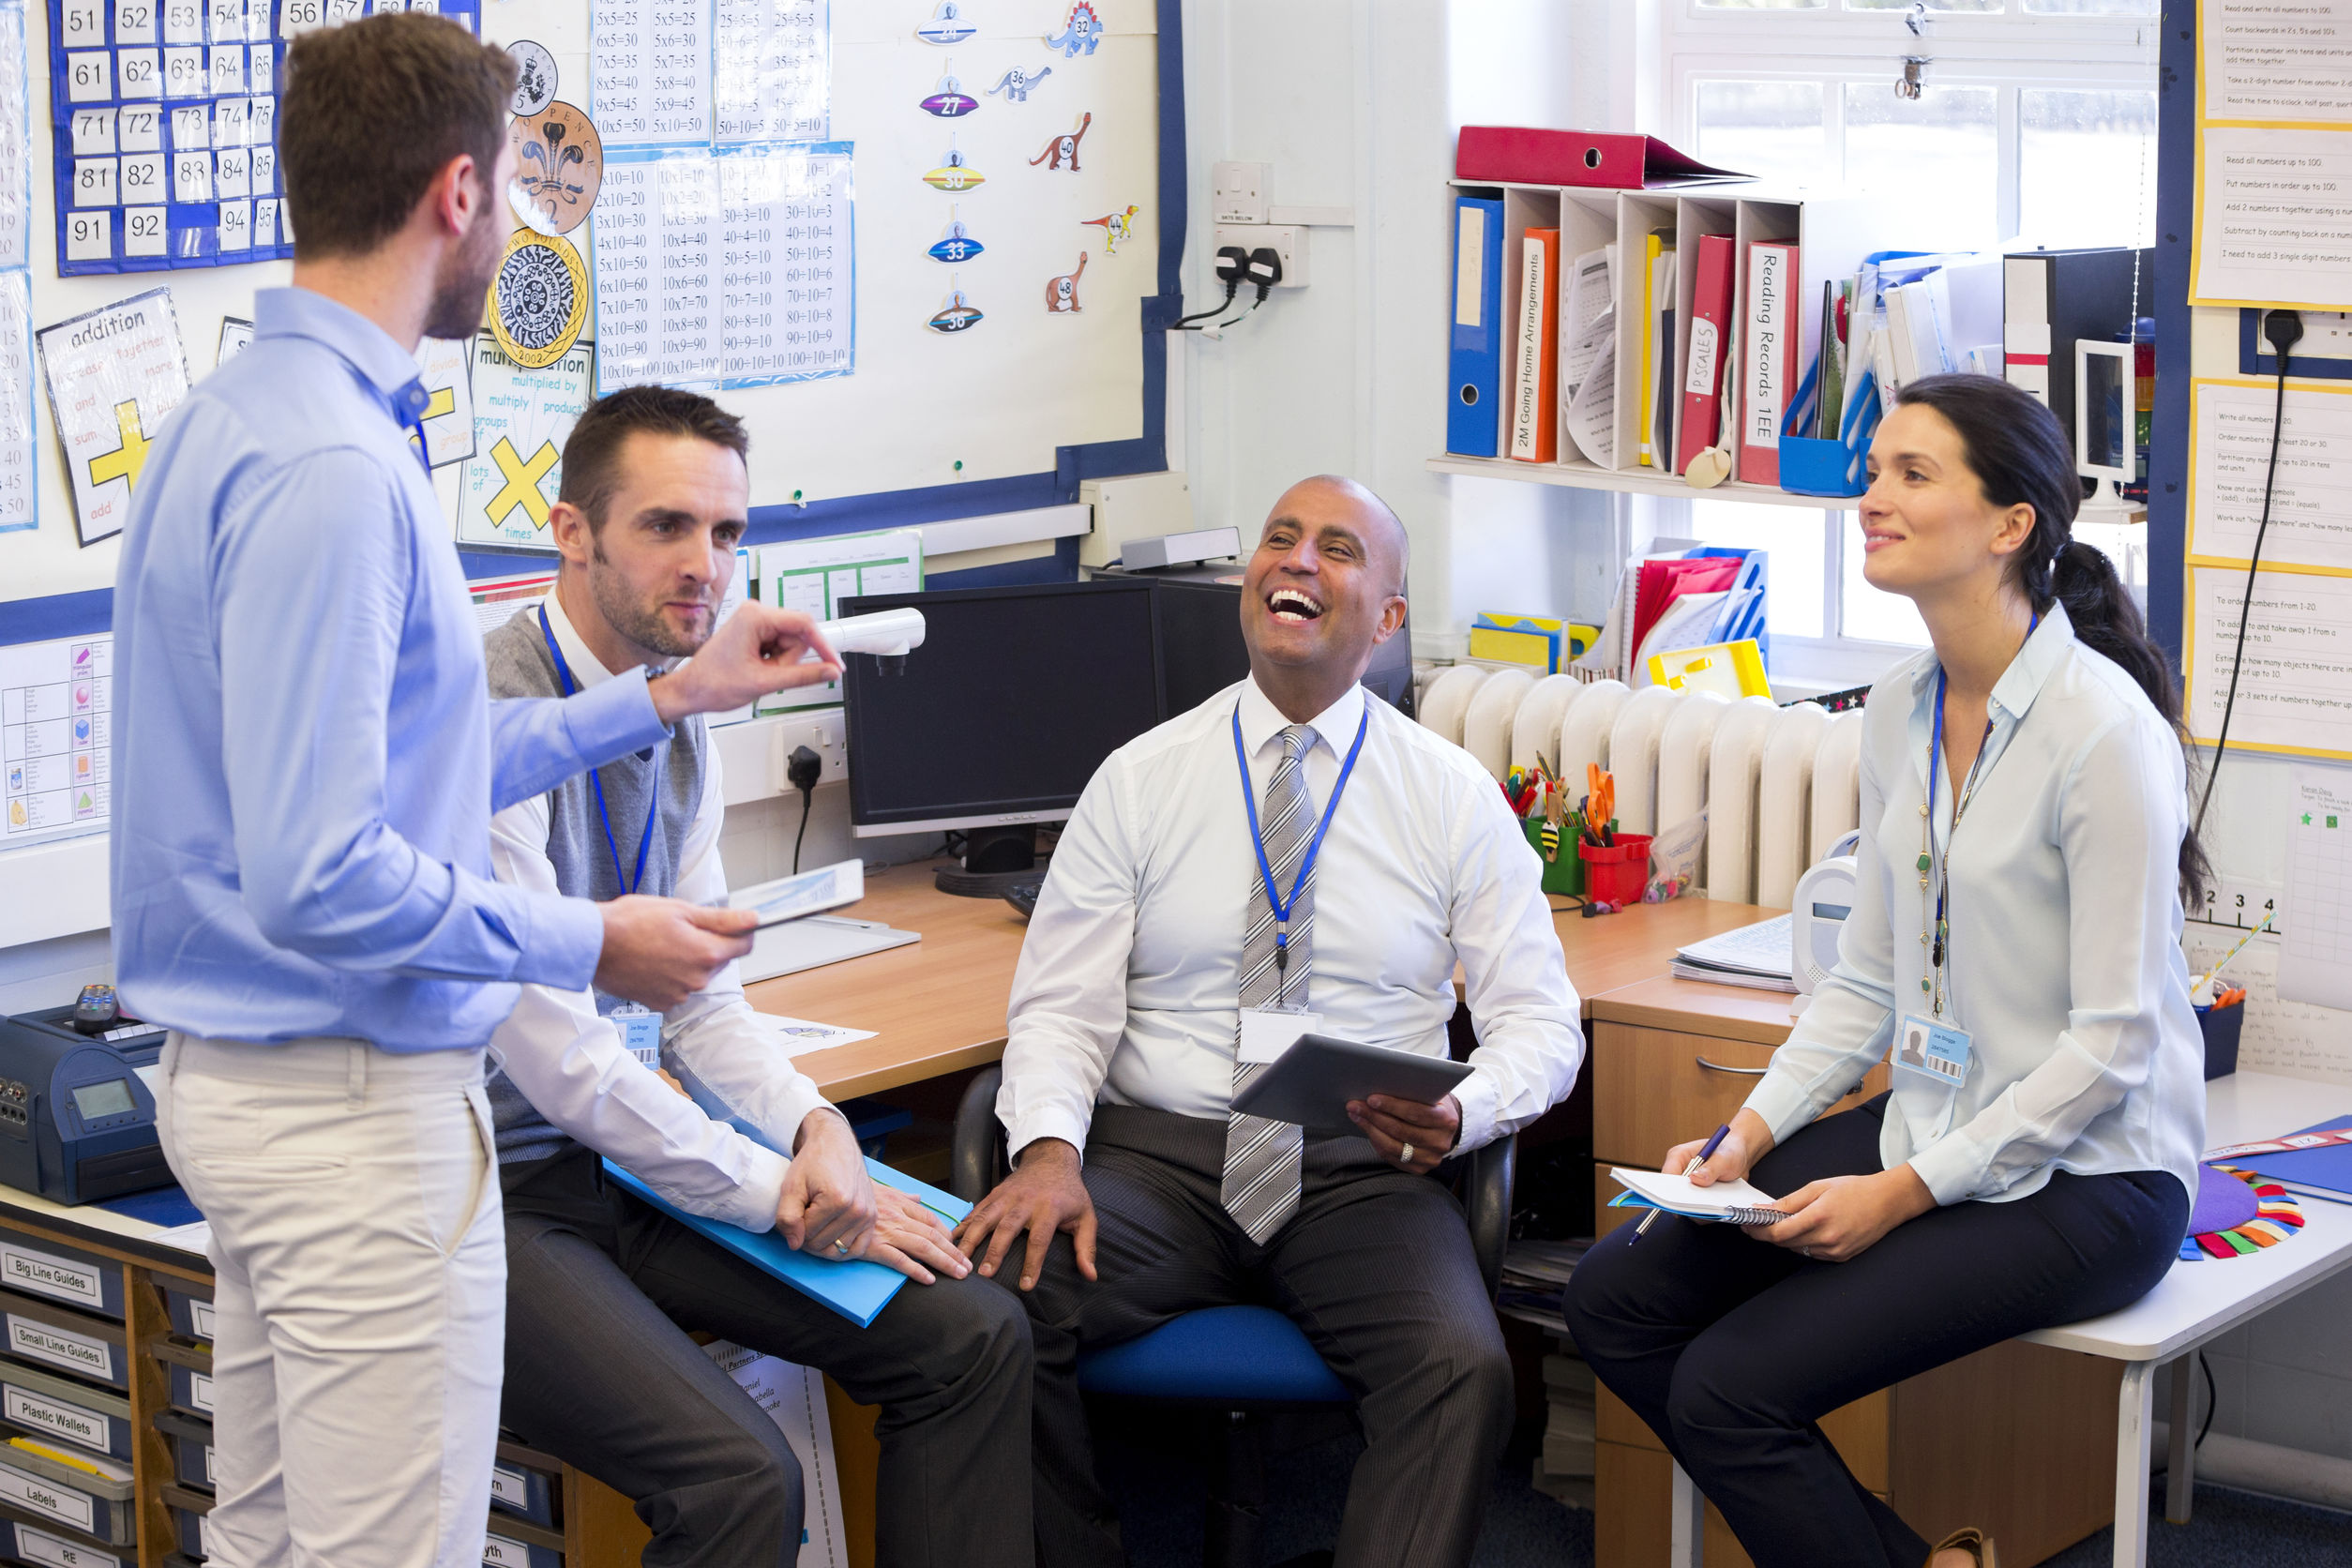 Promoting staff well being in schools